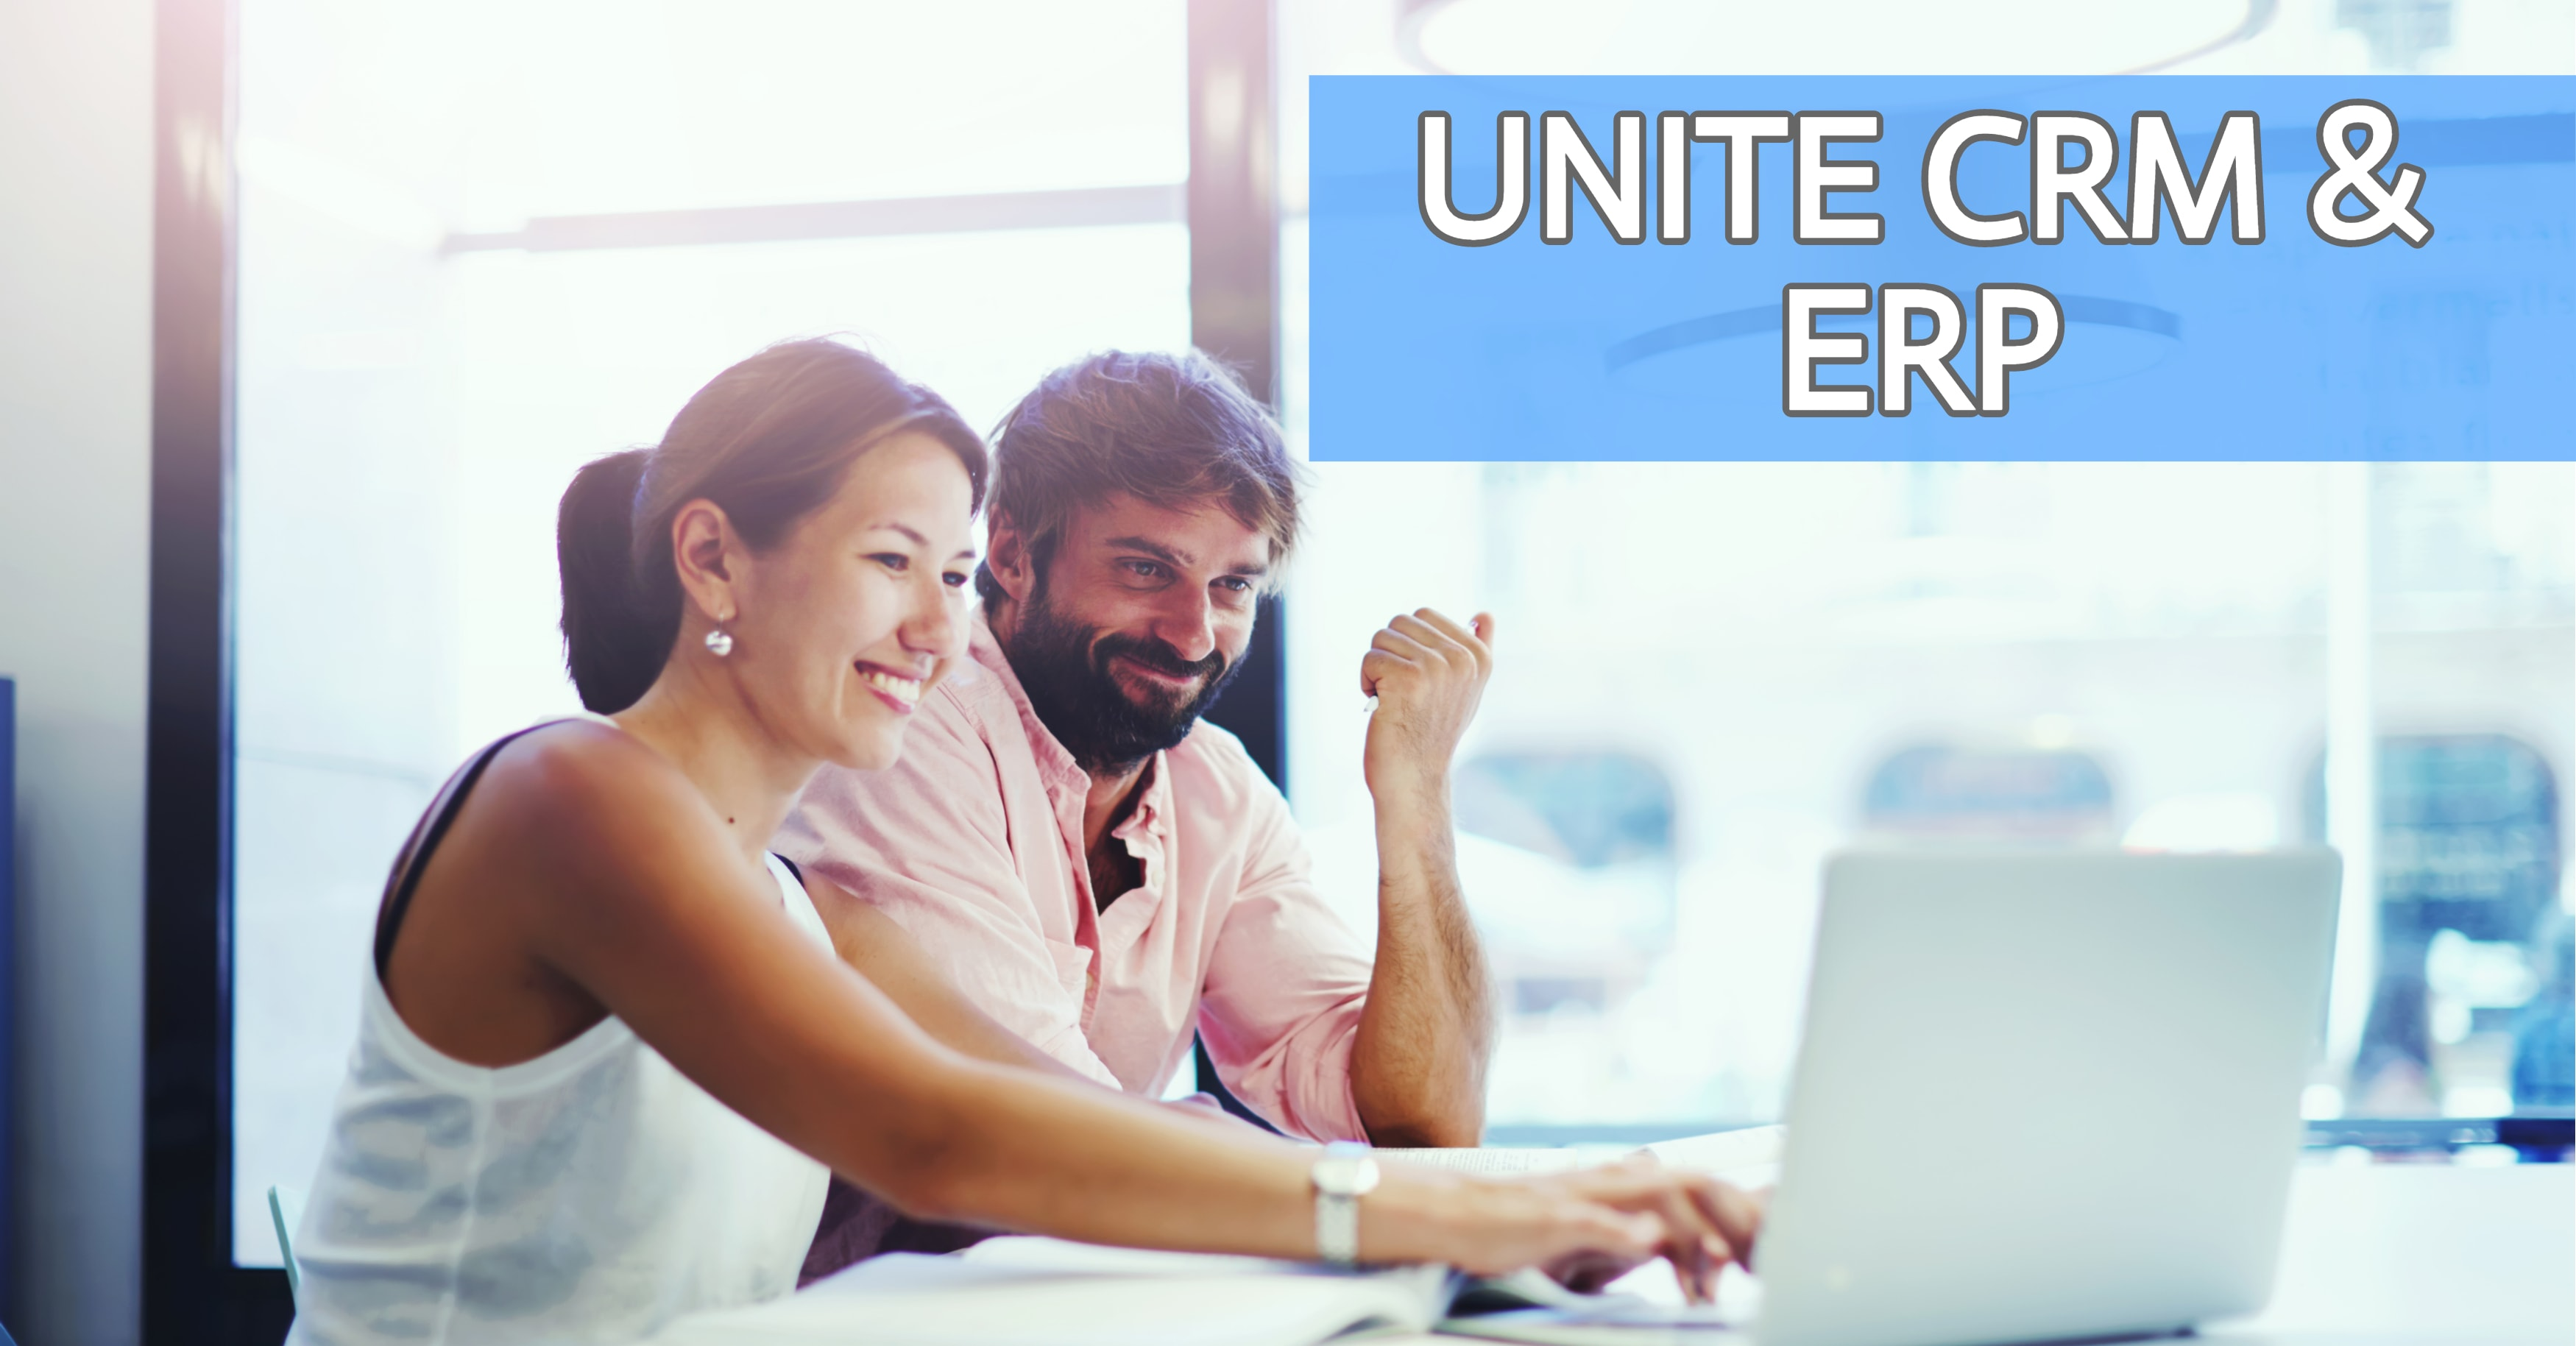 Unite CRM and ERP for Rapid ROI